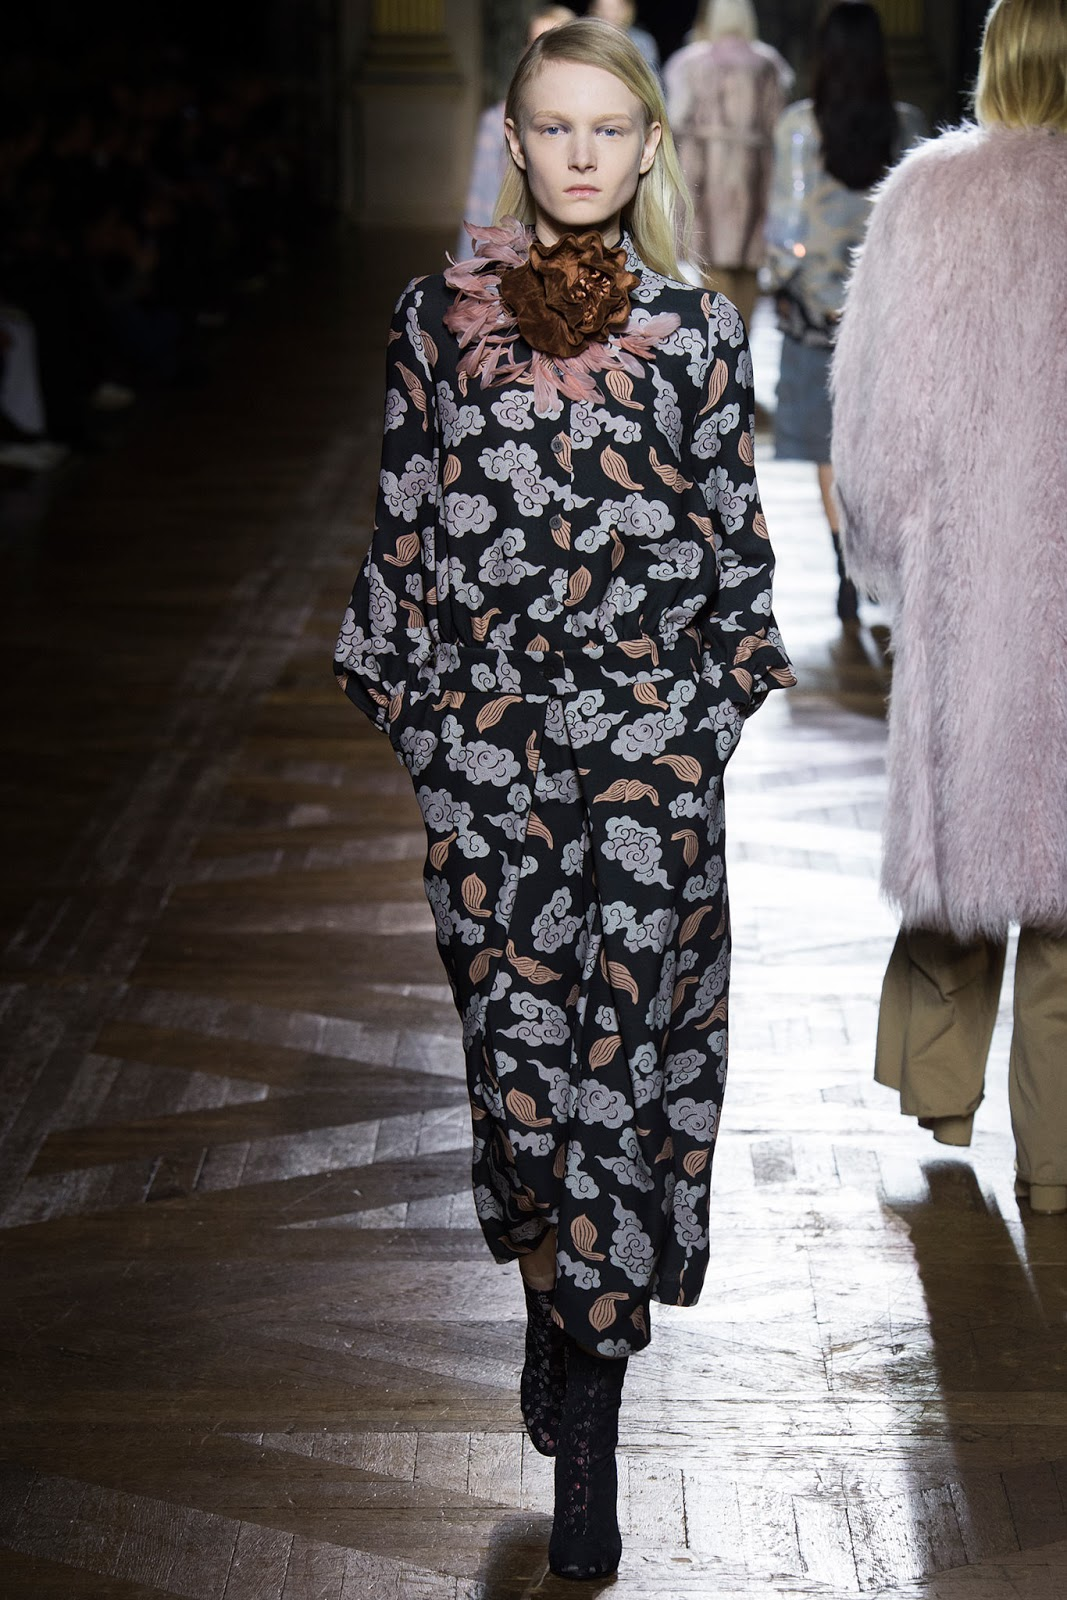 Brocade trend on AW 2015 runway at Dries van Noten / via www.fashionedbylove.co.uk